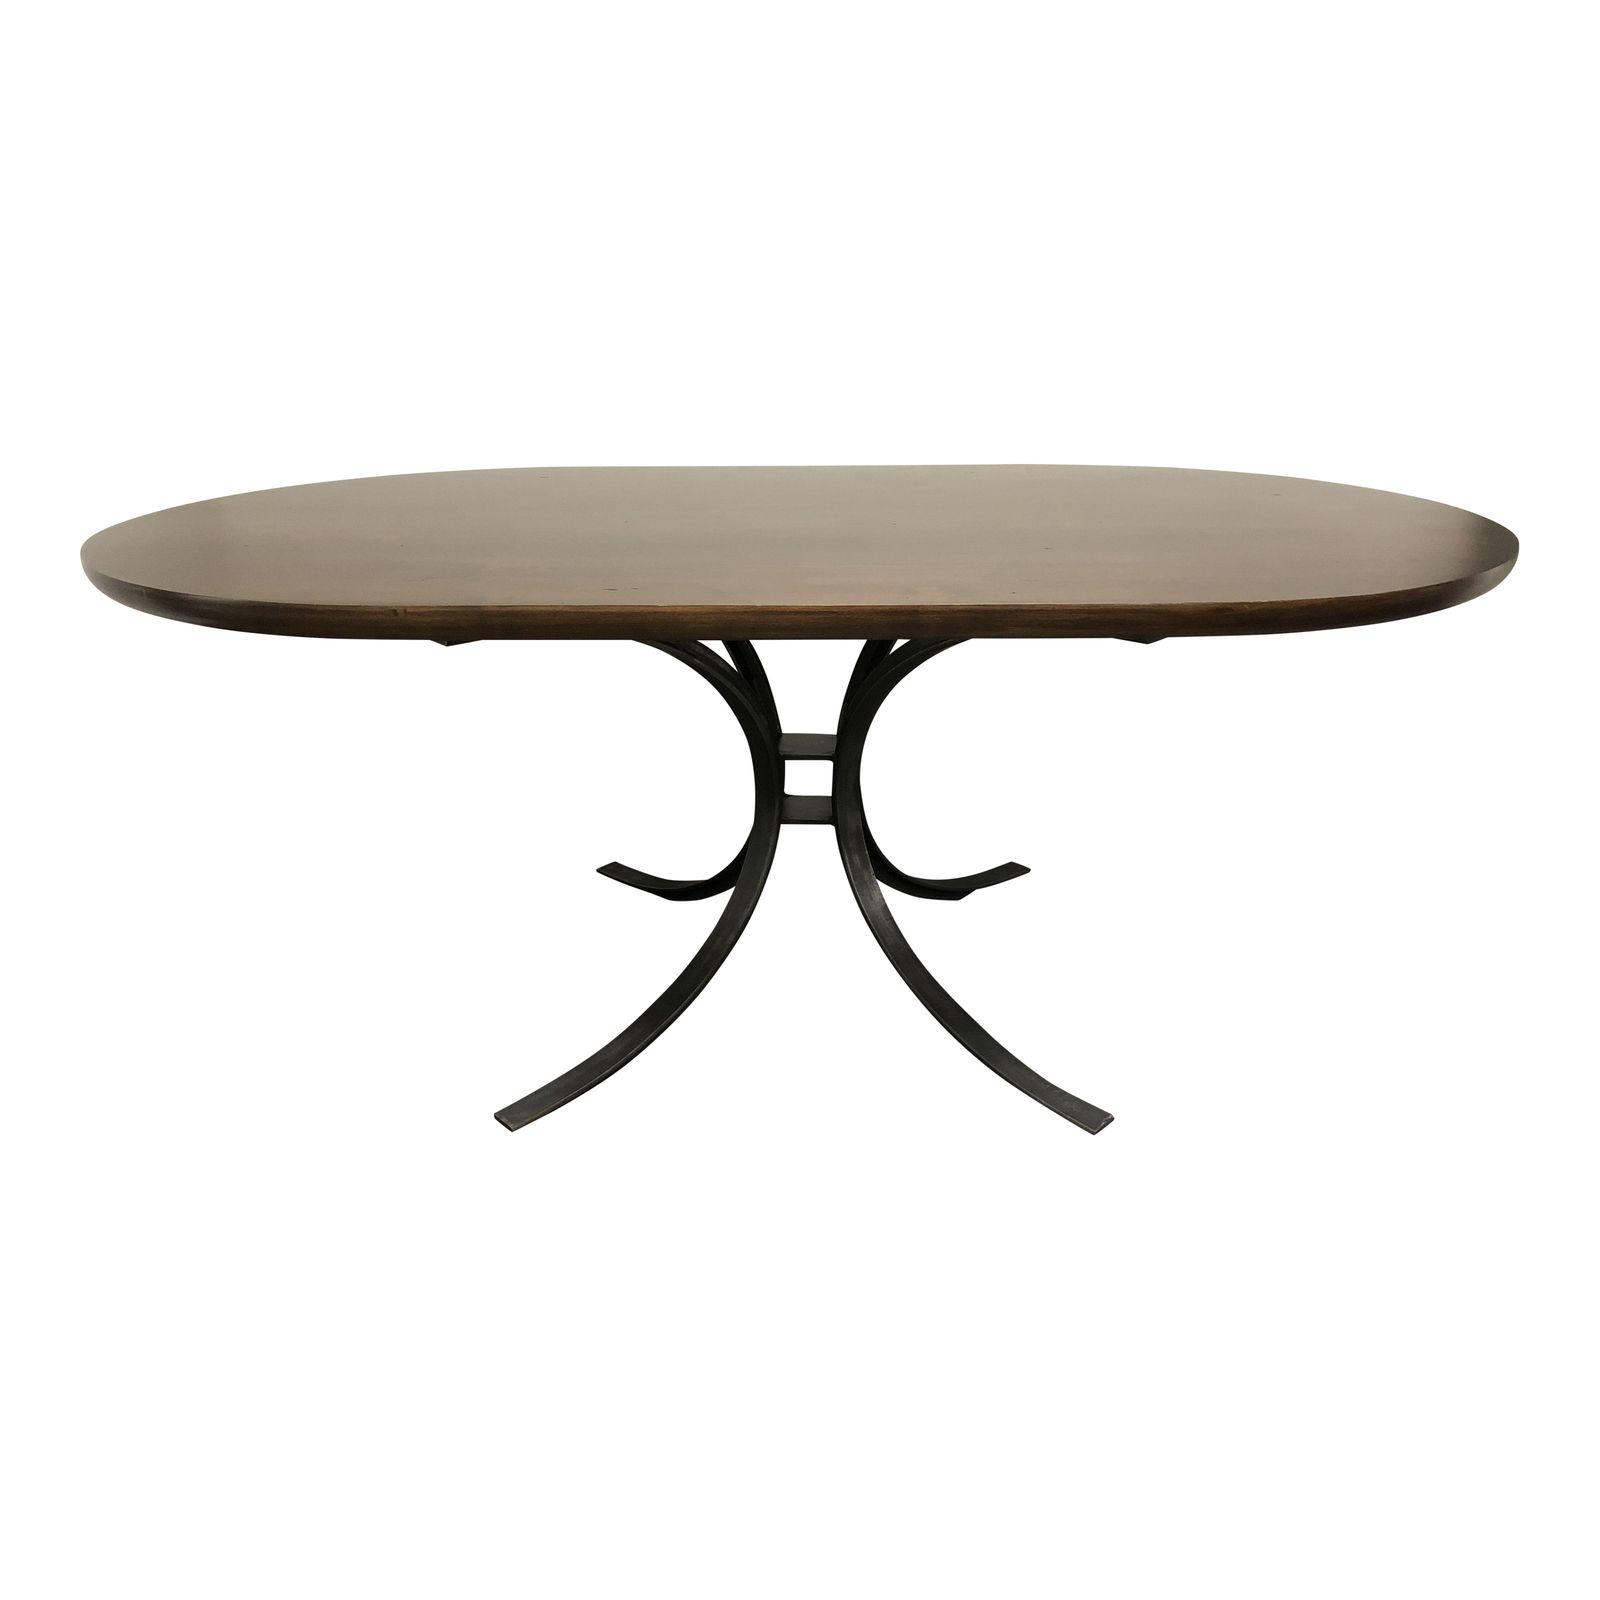 Redford House Quincy Oval Dining Table. Original Price: $3,678.00